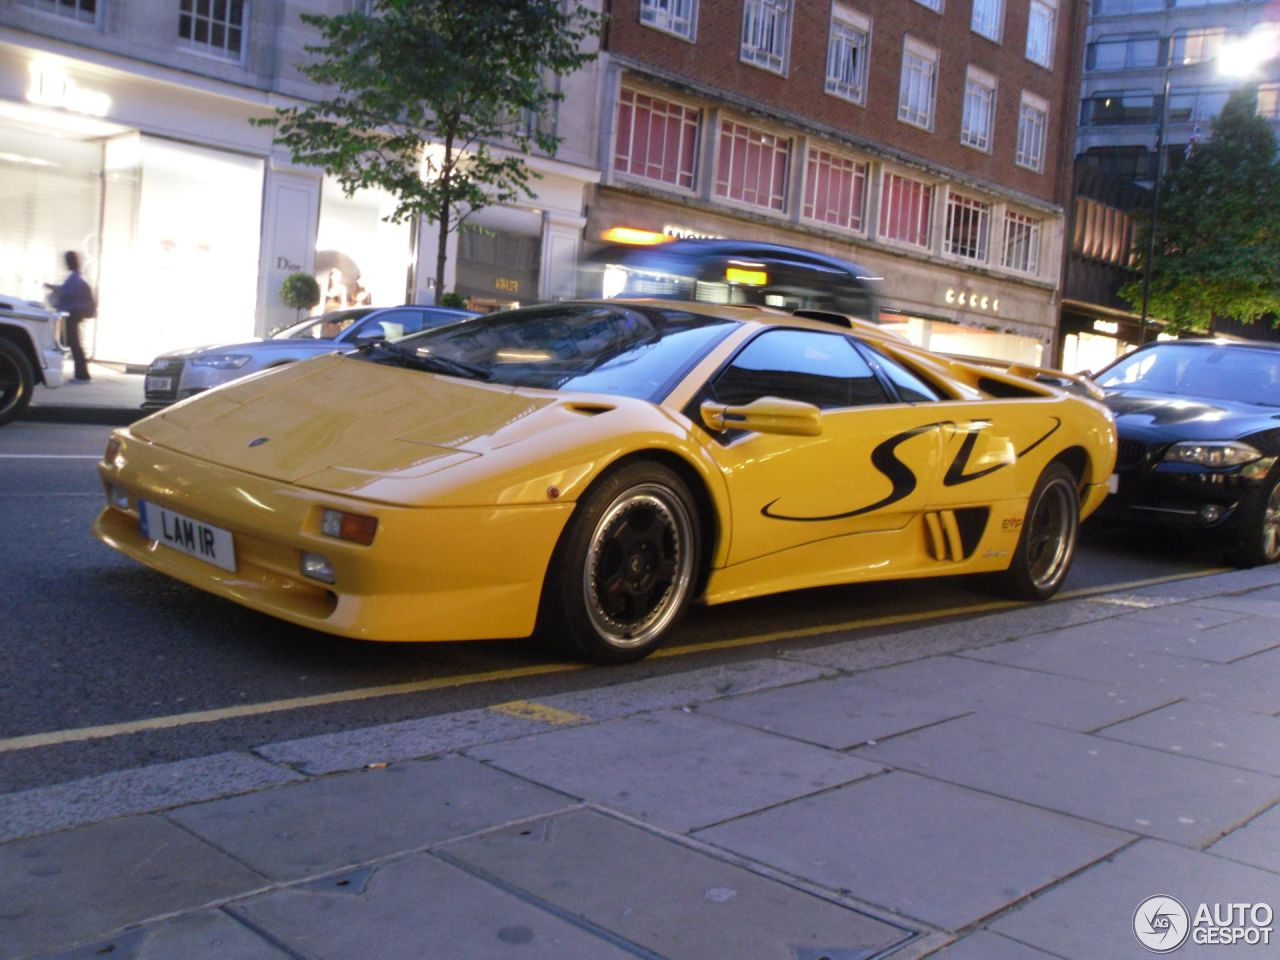 Lamborghini Diablo Sv 4 September 2016 Autogespot